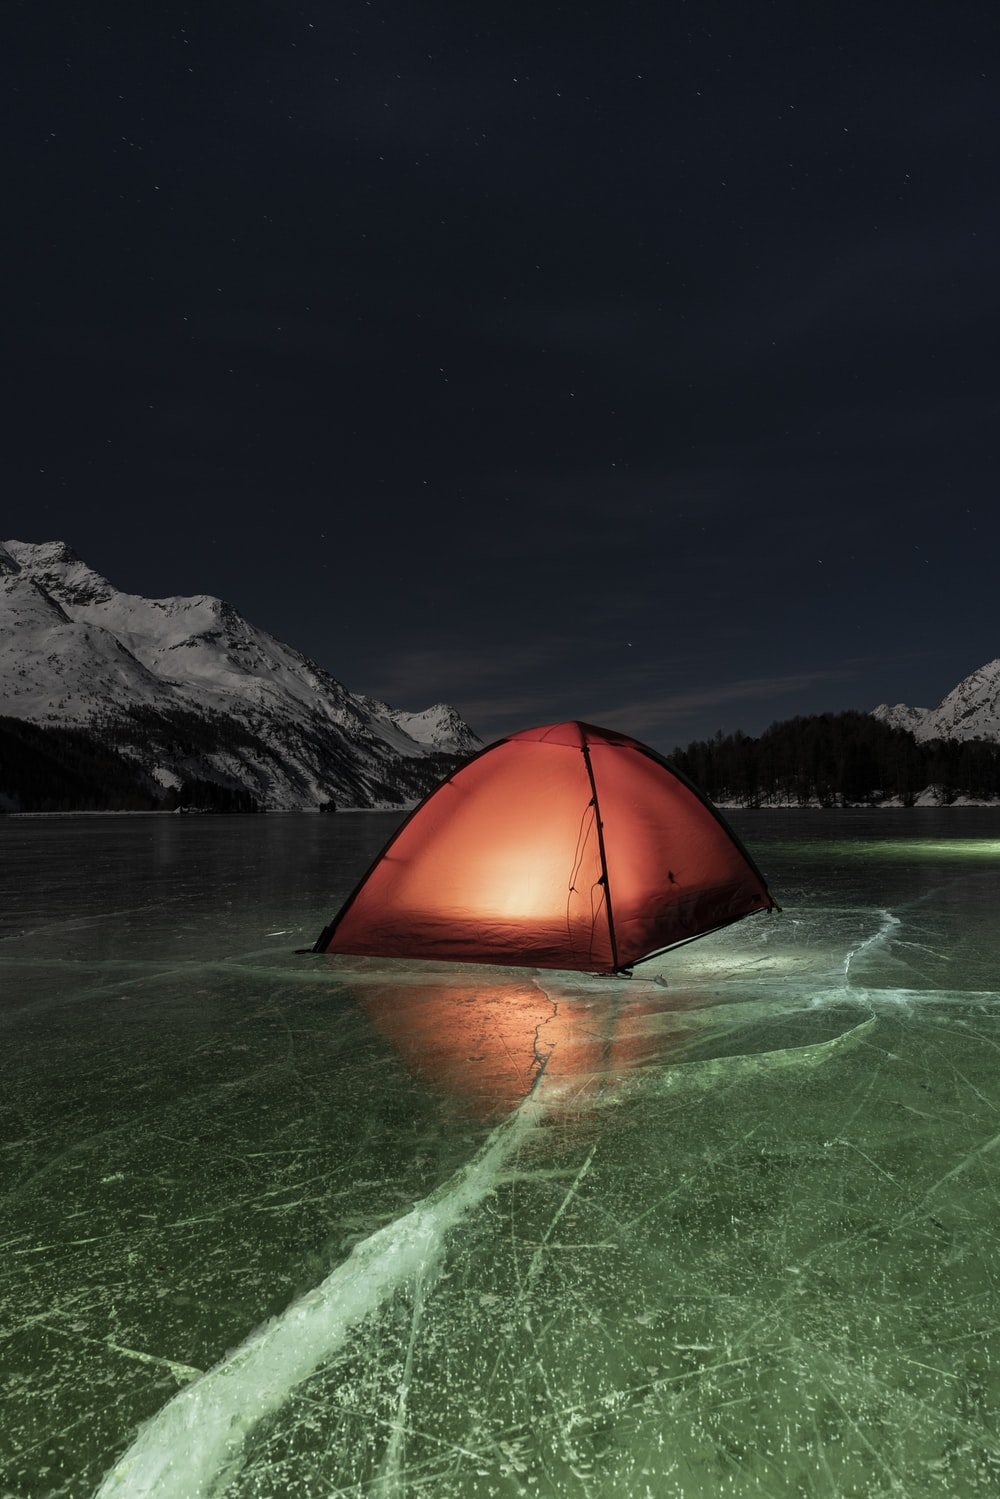 orange dome tent on green water near mountain during night time